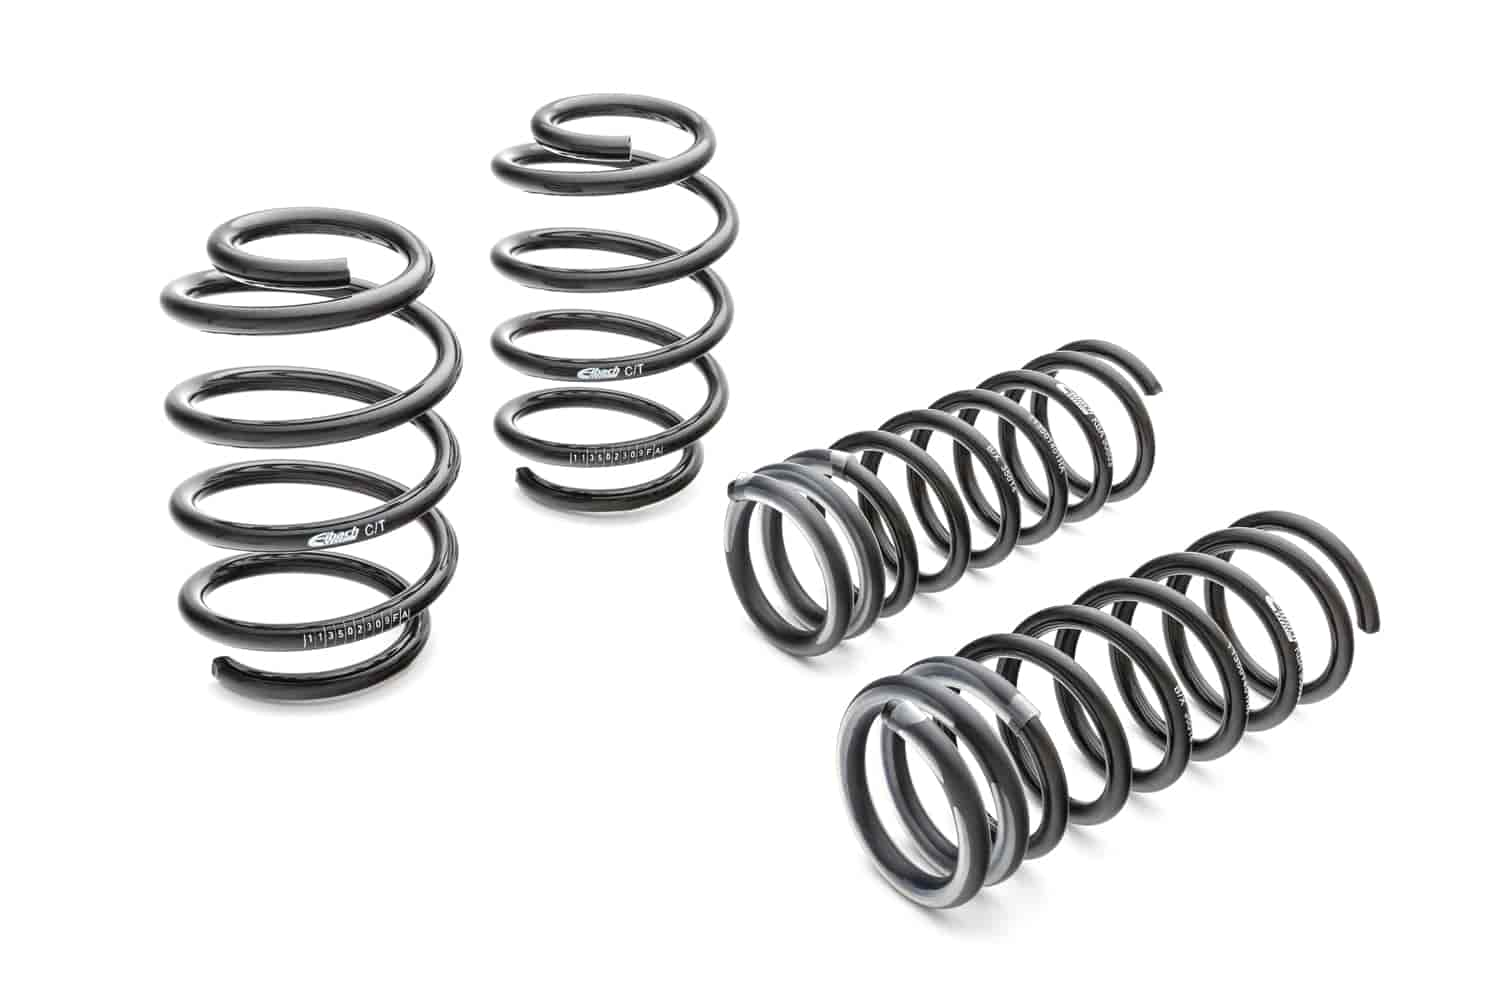 Eibach 2873.140 - Eibach Pro-Kit Lowering Springs for Mopar Cars